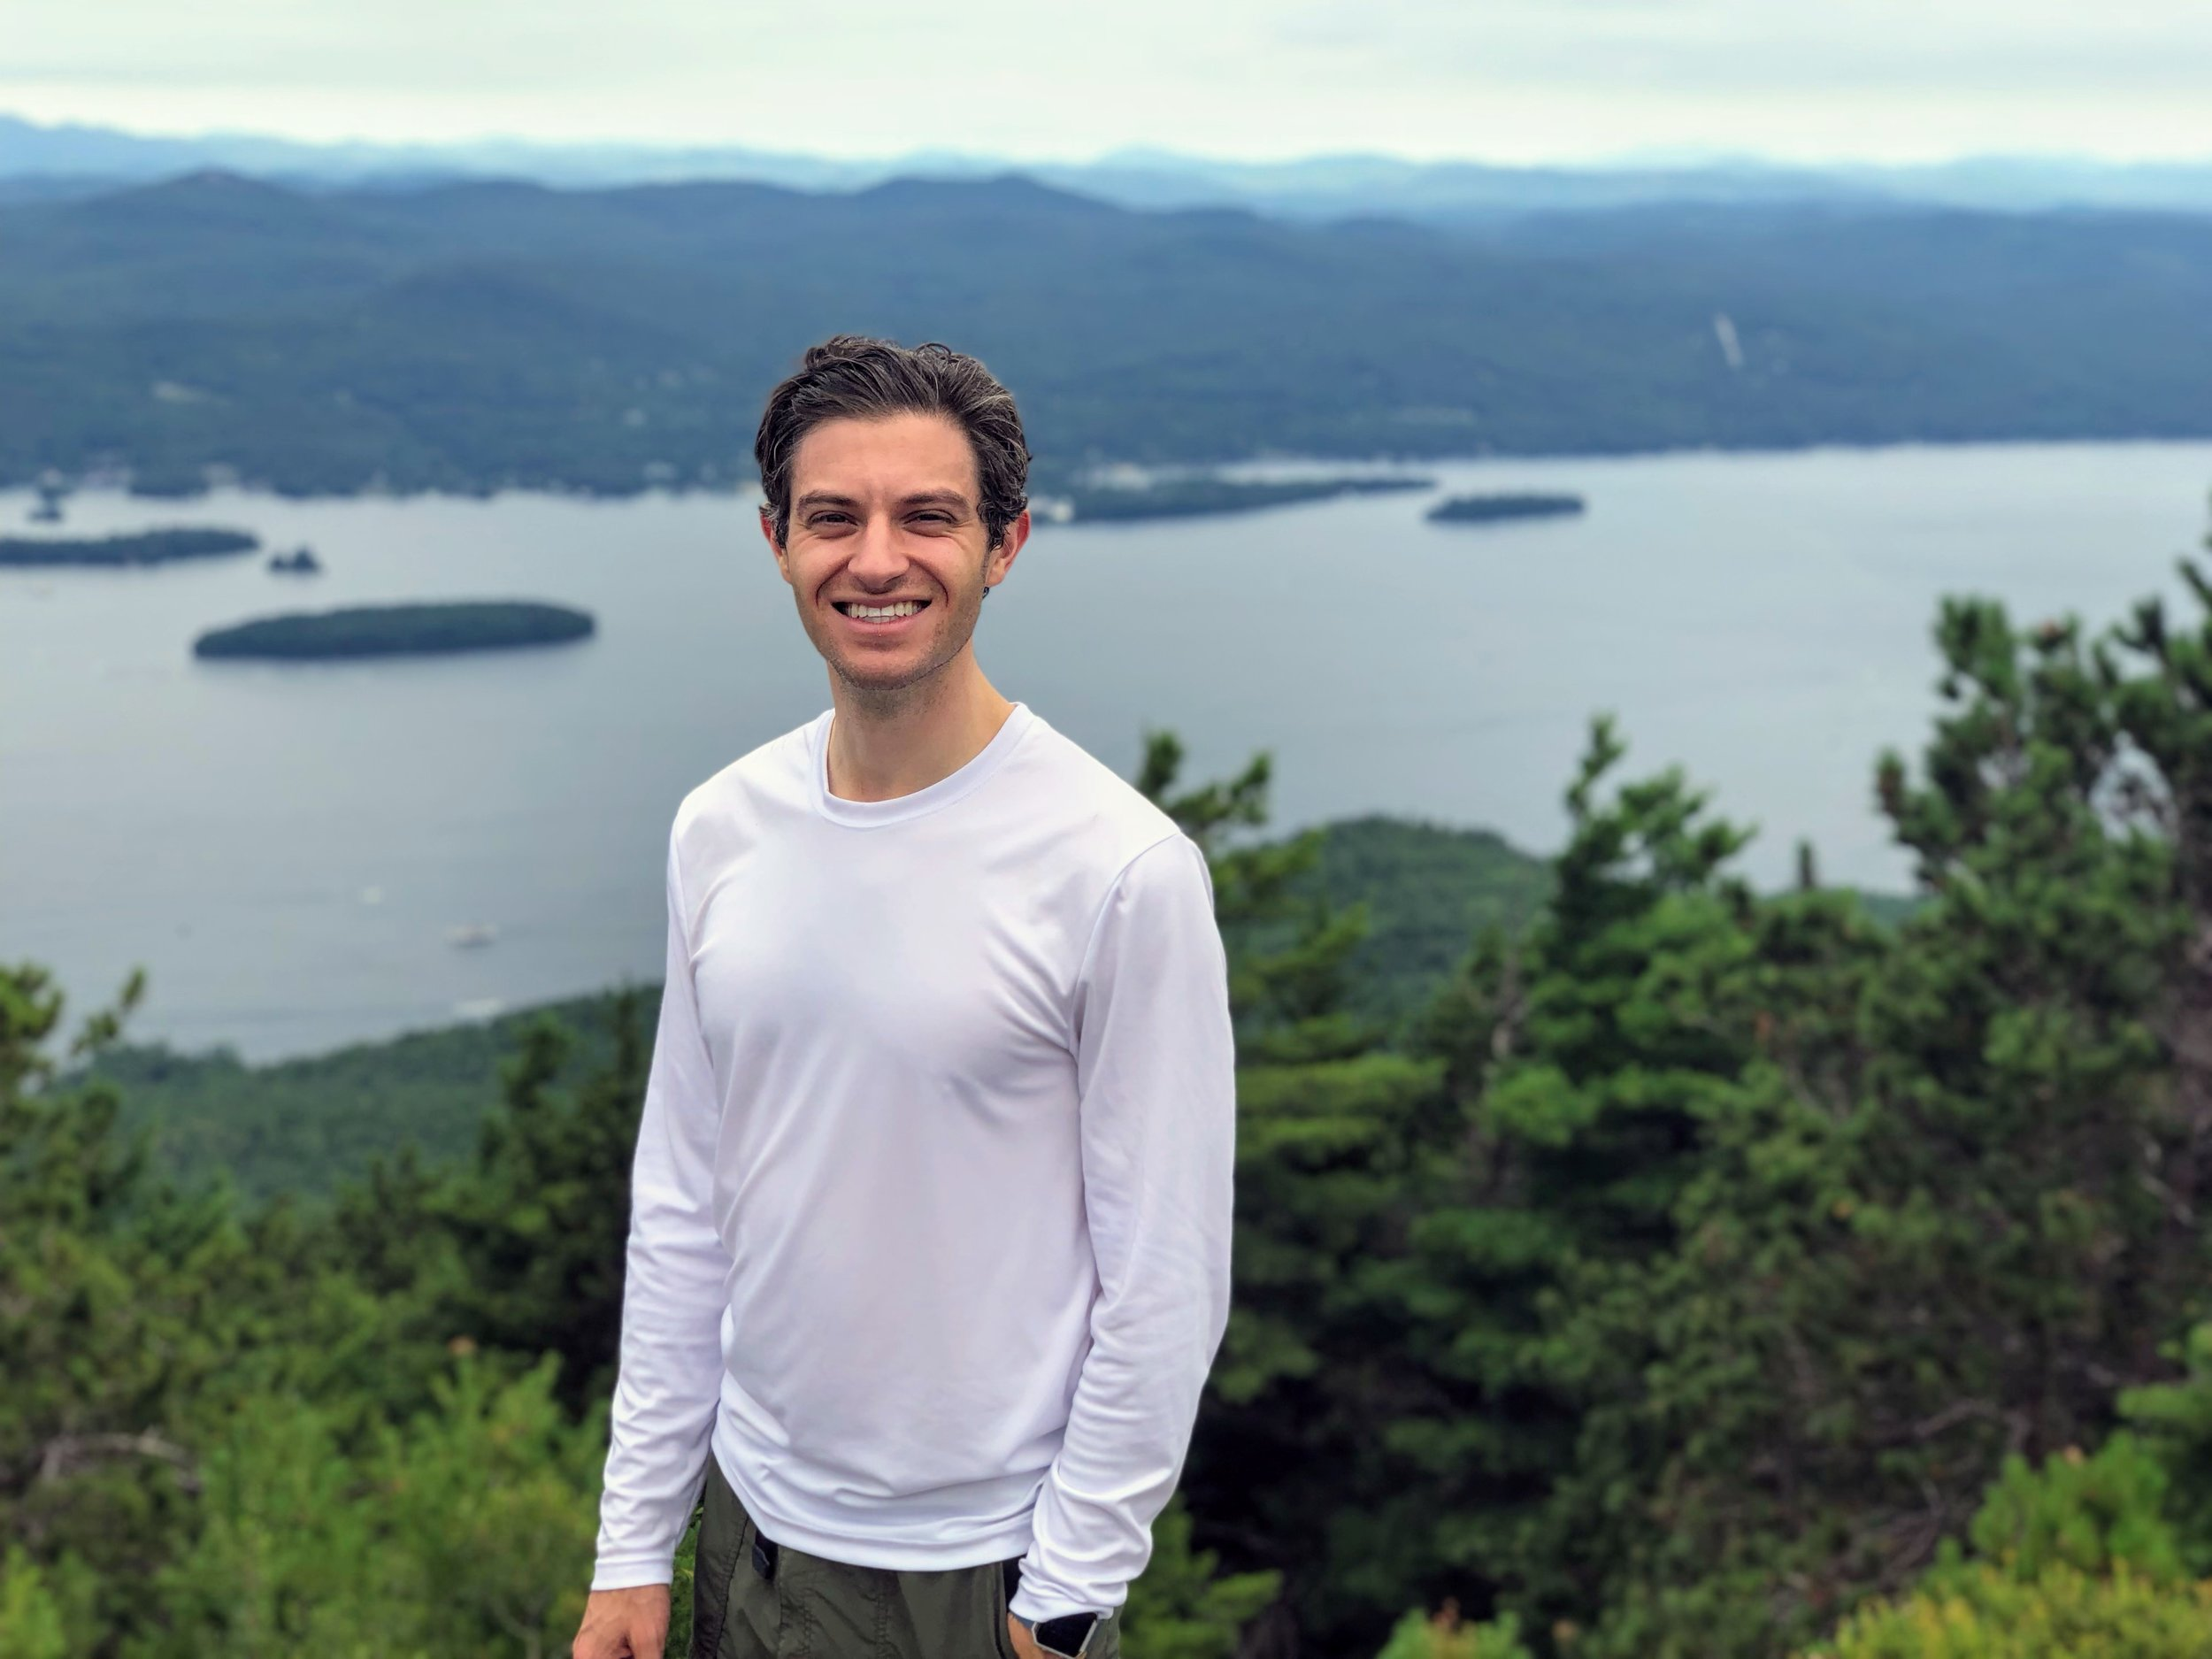 Nathan on Buck Mountain, his favorite hike in Upstate New York.